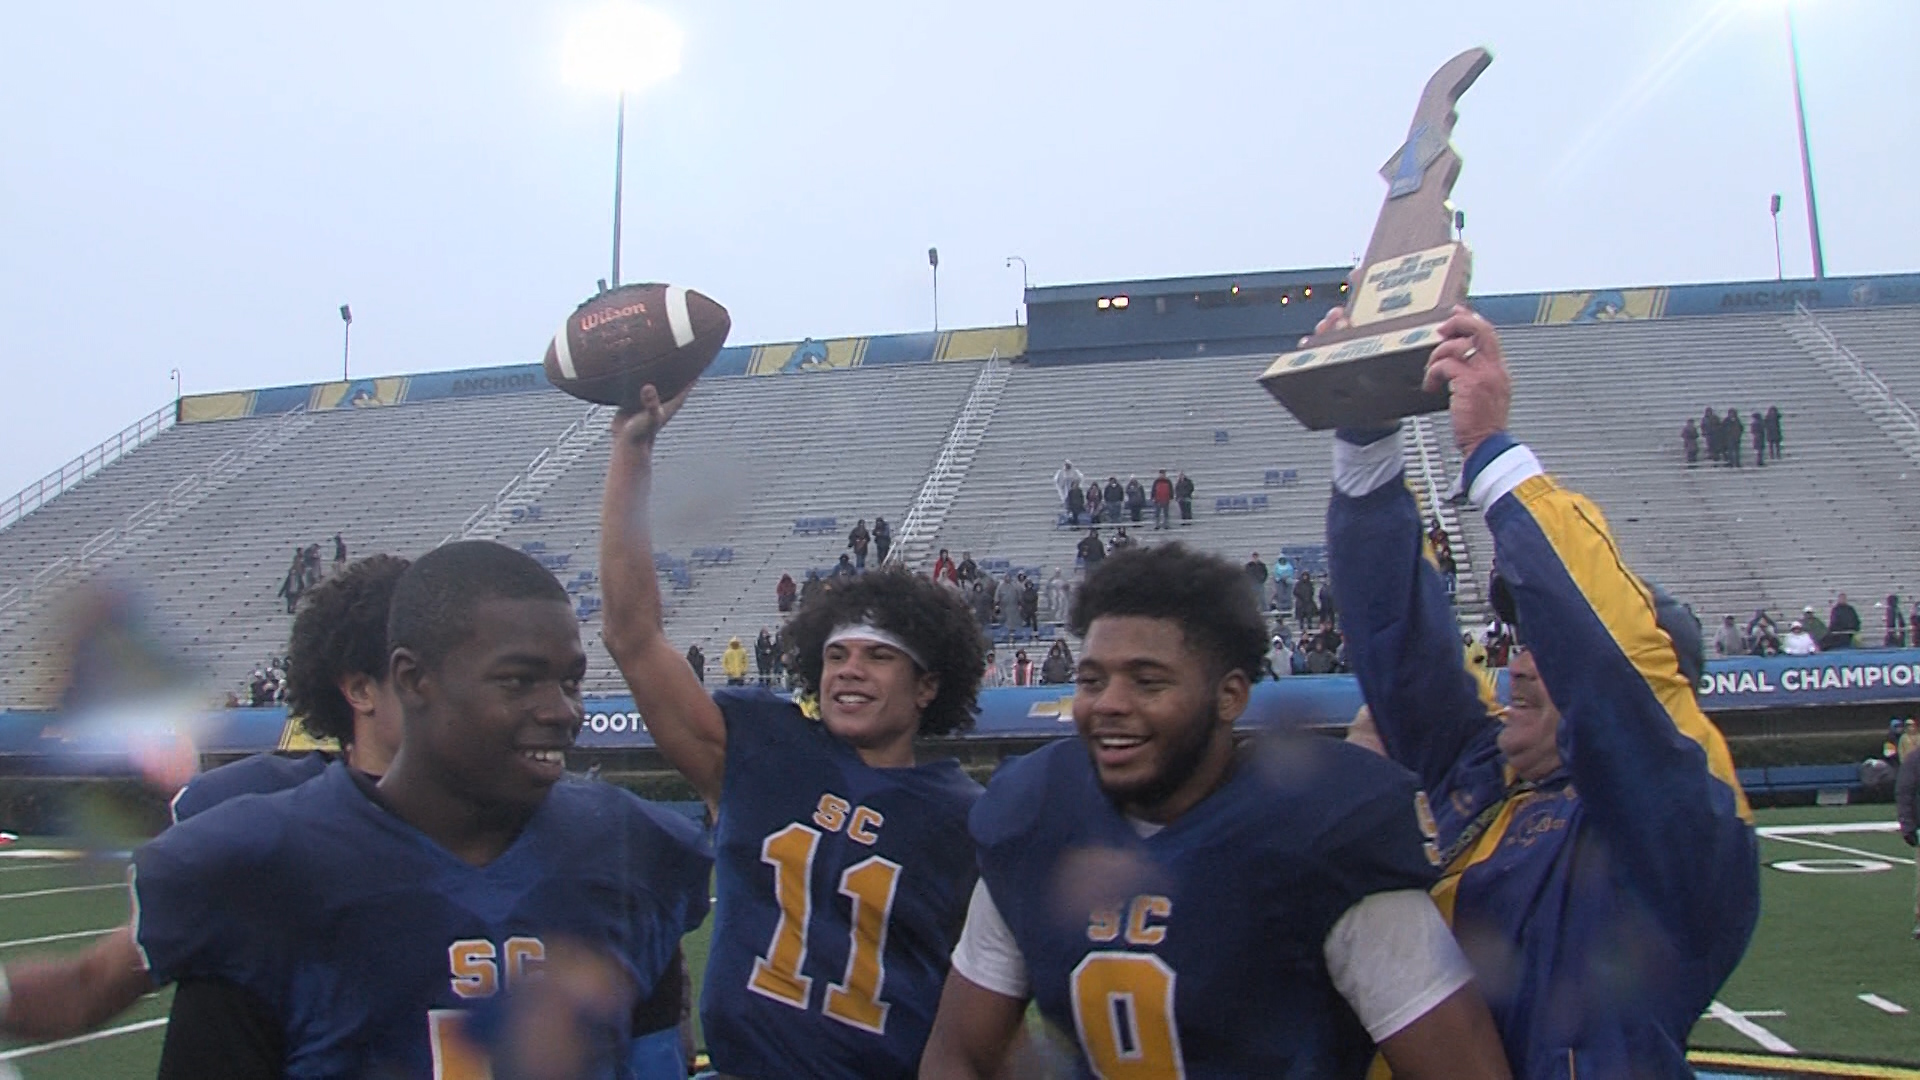 Sussex Central Celebrates A Championship